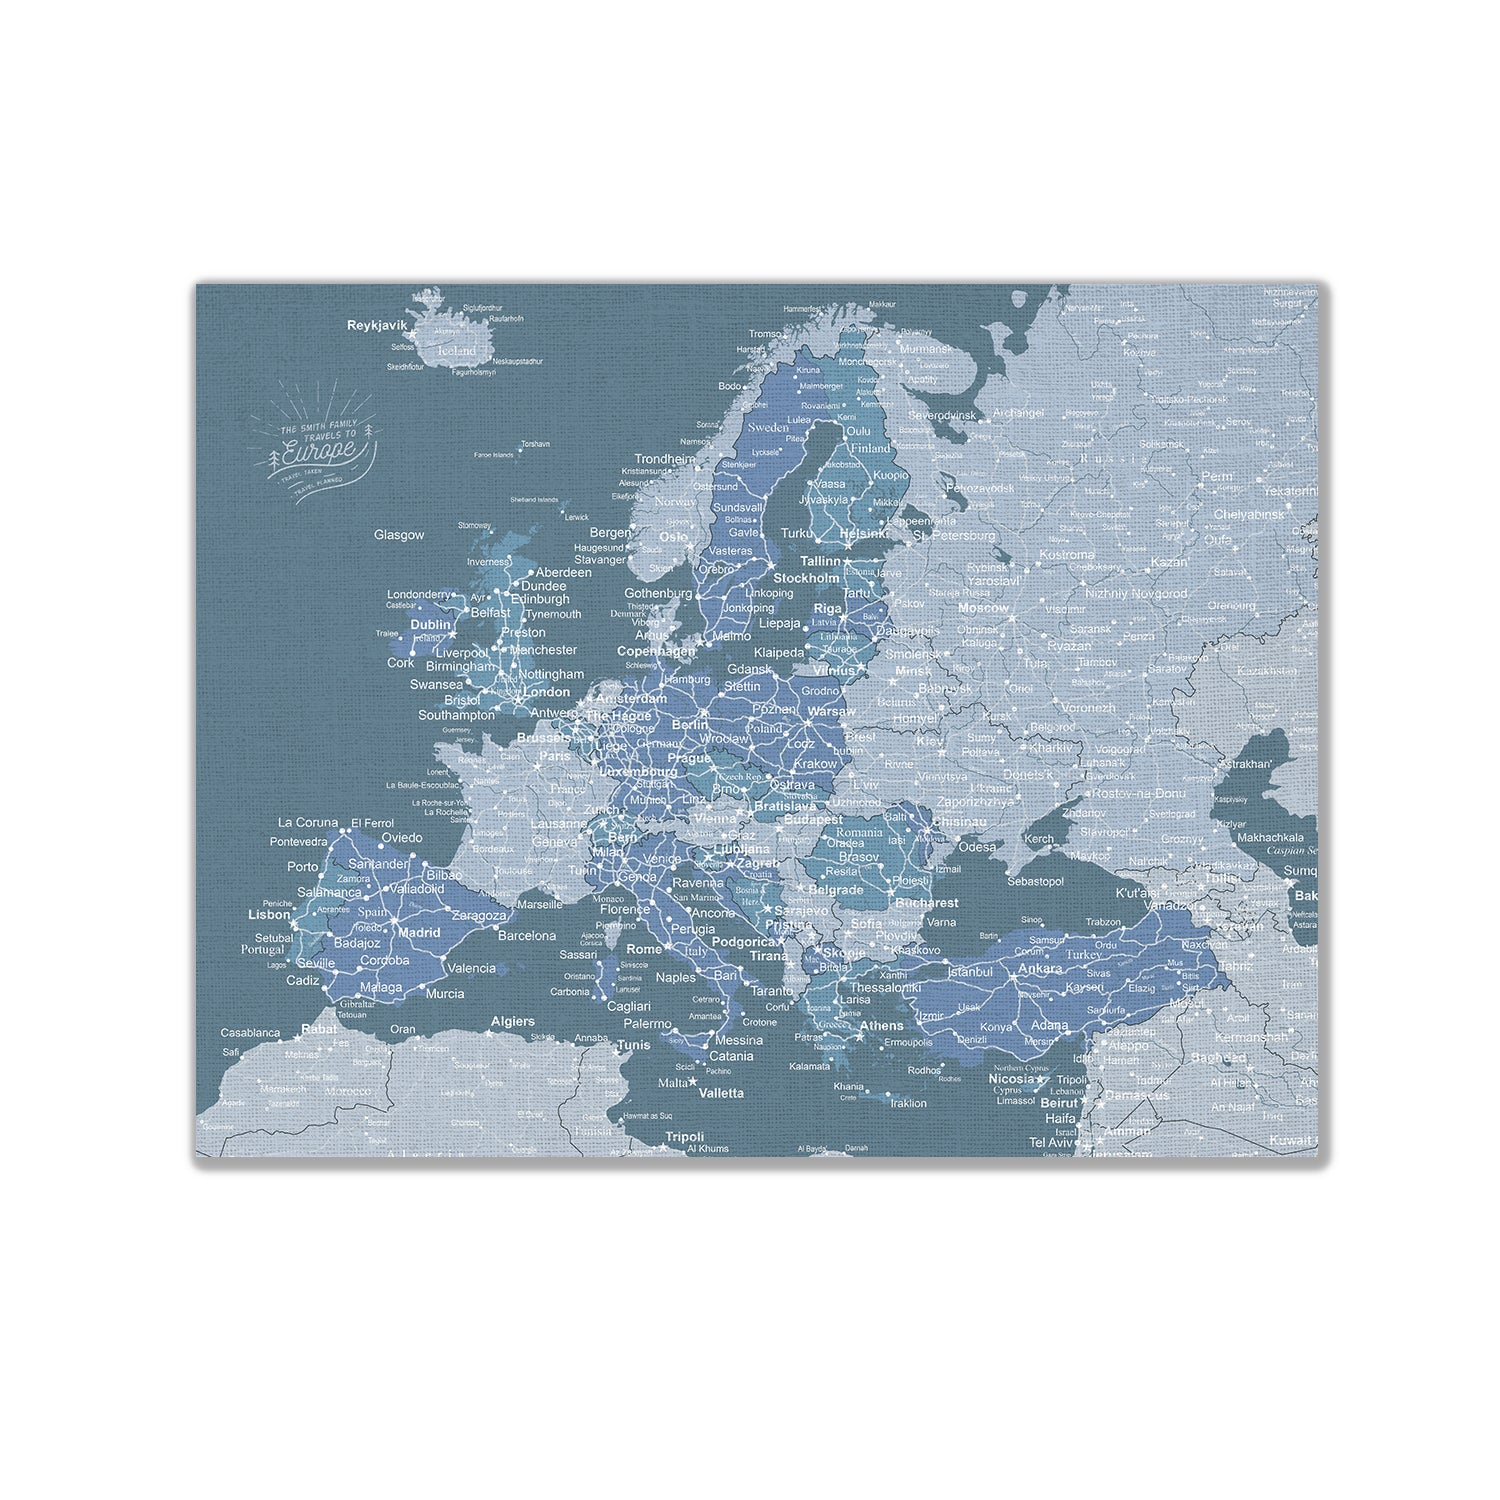 Europe Push Pin Map - Blue - WITH 1,000 PINS!